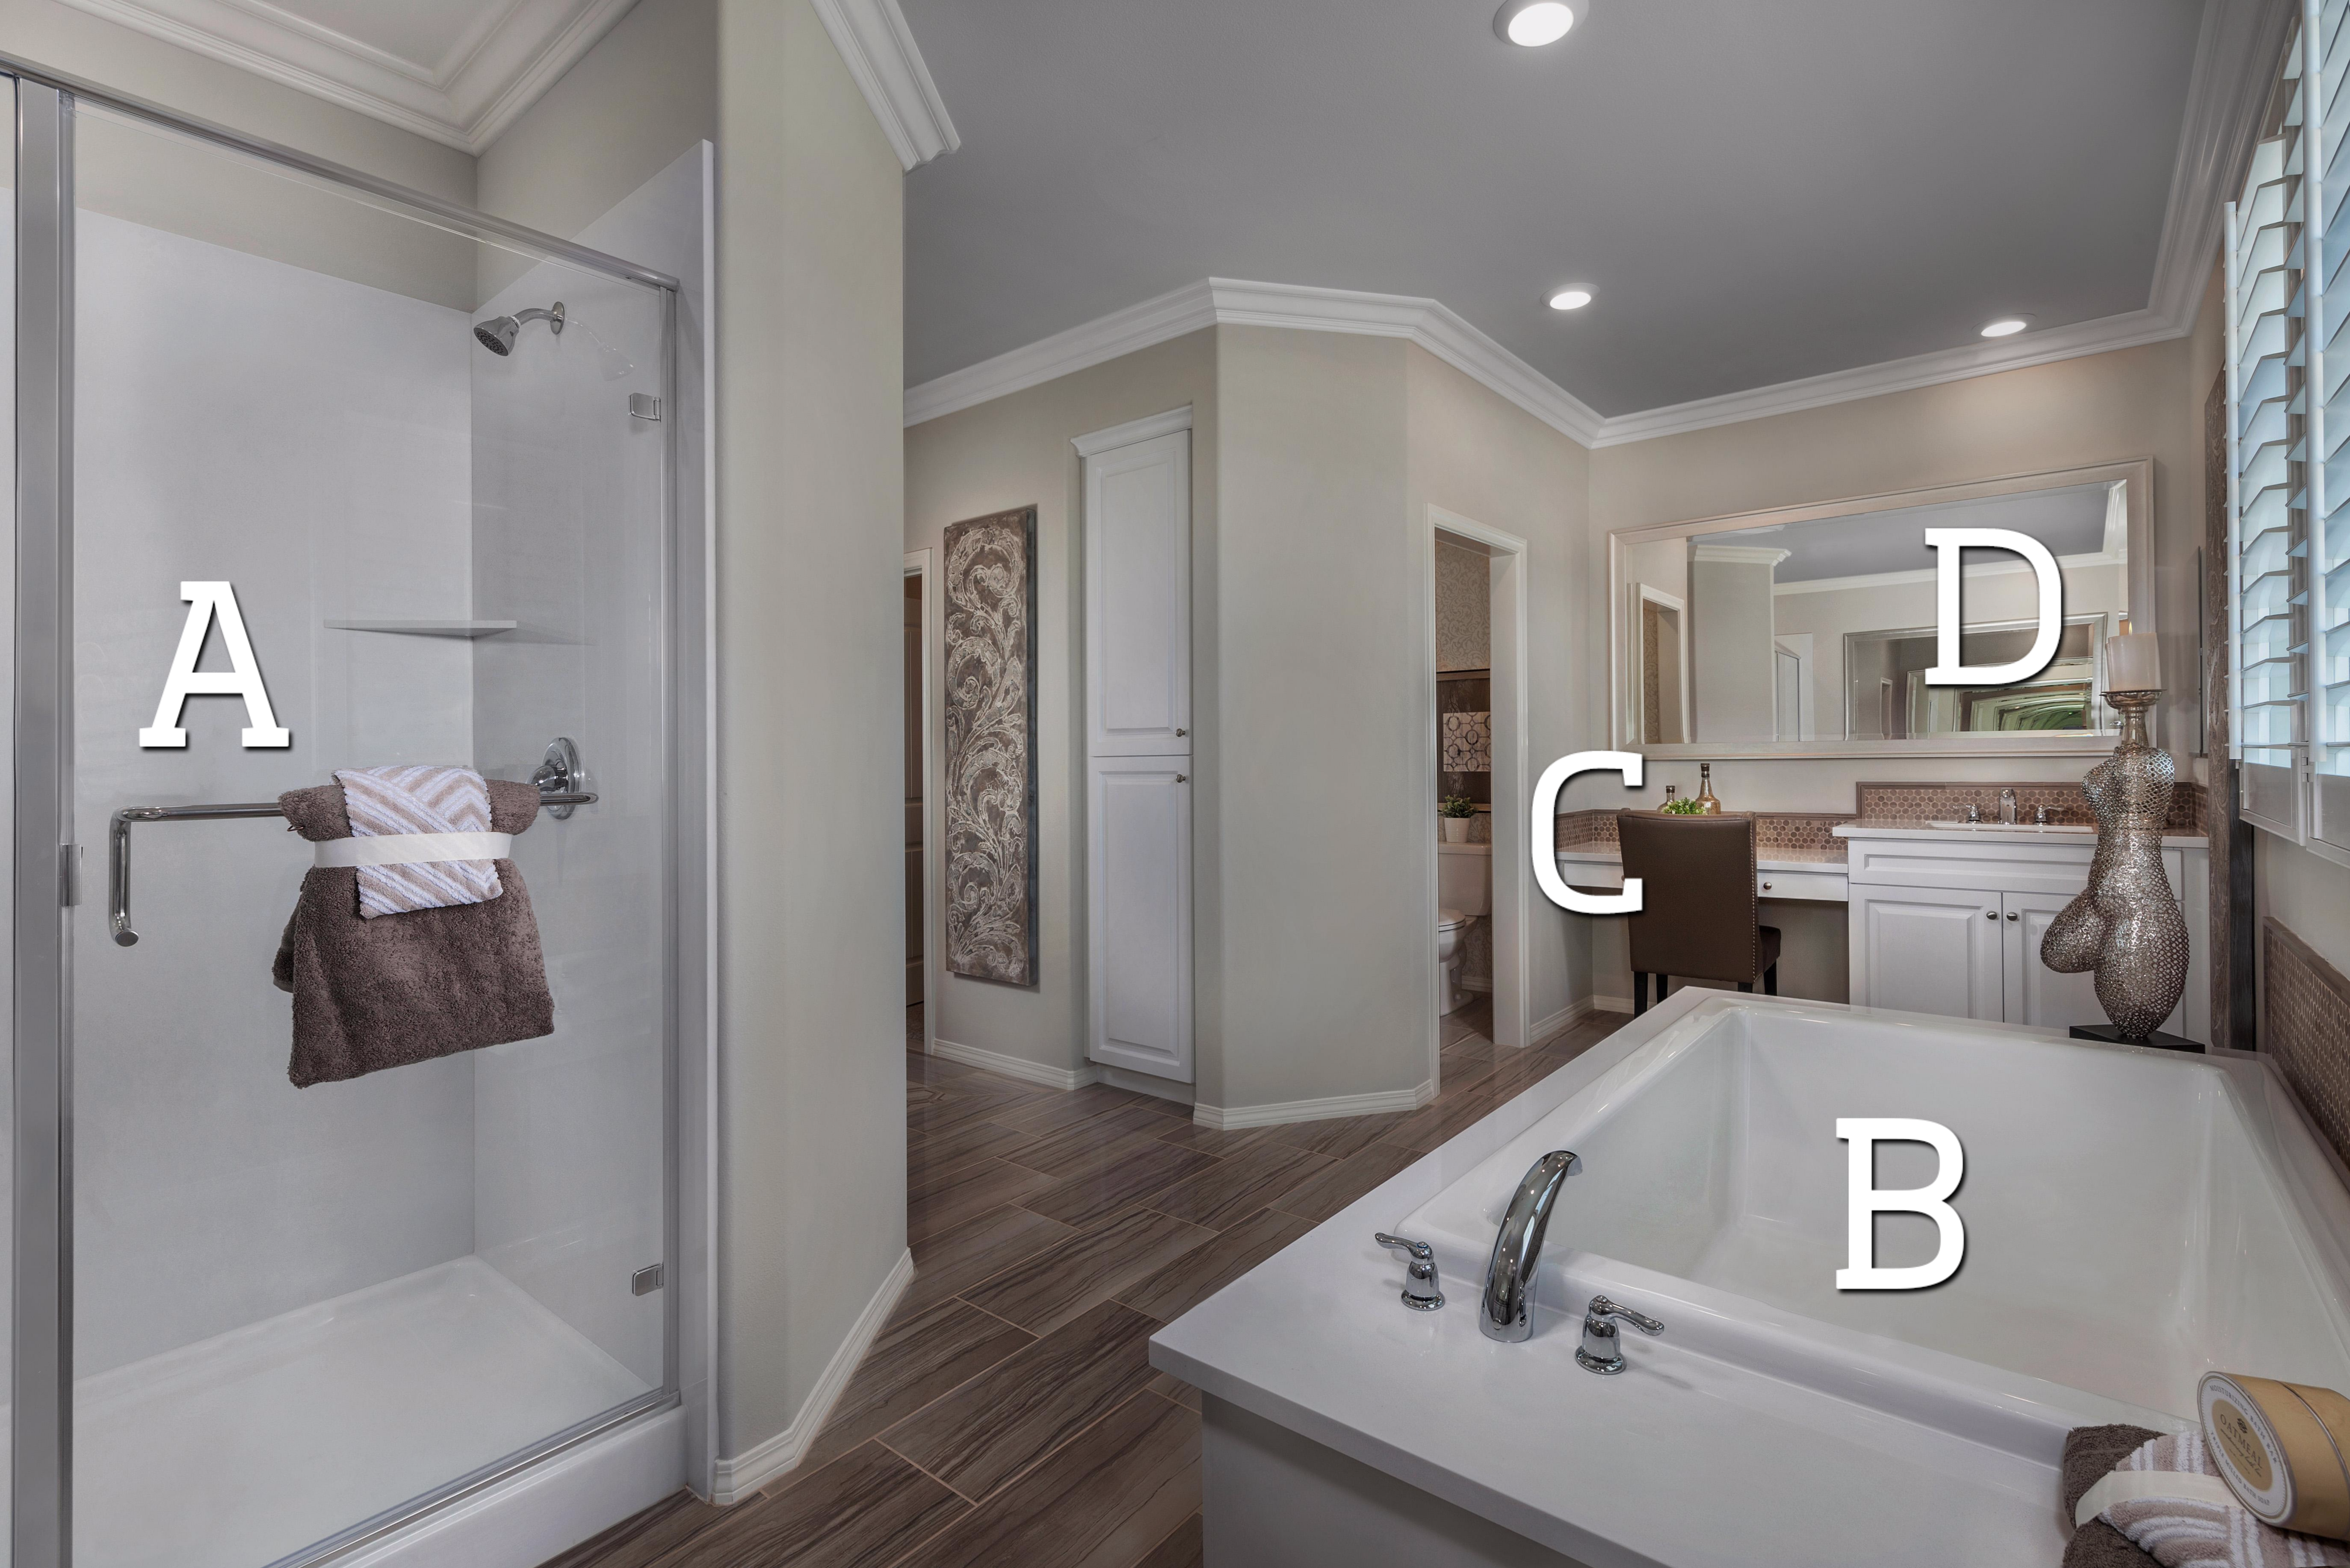 Attrayant What Is Your FAVORITE Feature In This Master Bathroom?! A. Glass Enclosed  Shower B. Luxurious Soaking Tub C. Vanity D. Wood Framed Mirrors Find Out  More ...